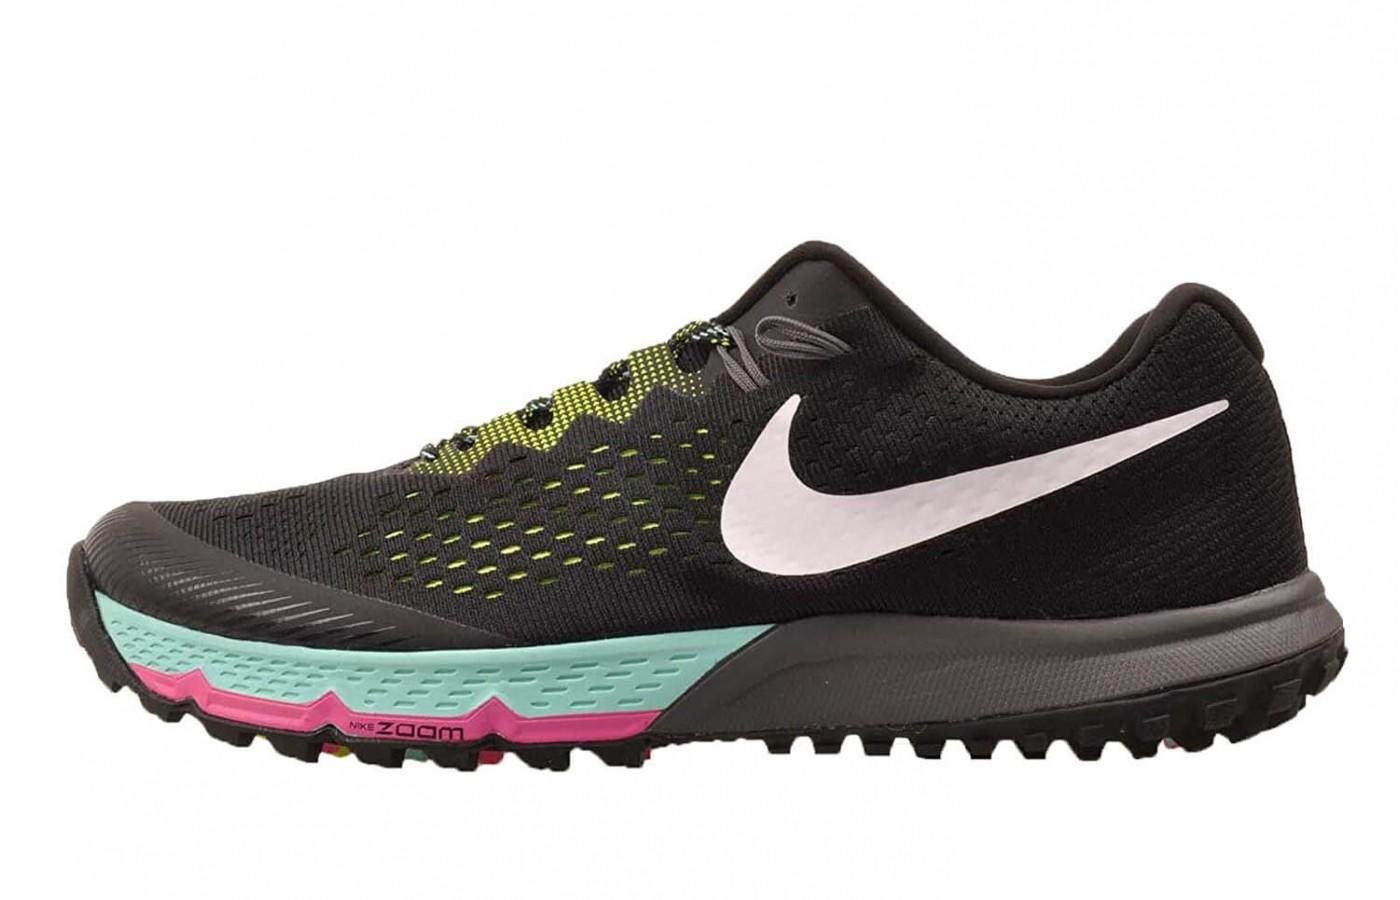 here's a look at the Nike Air Zoom Terra Kiger 4 ...